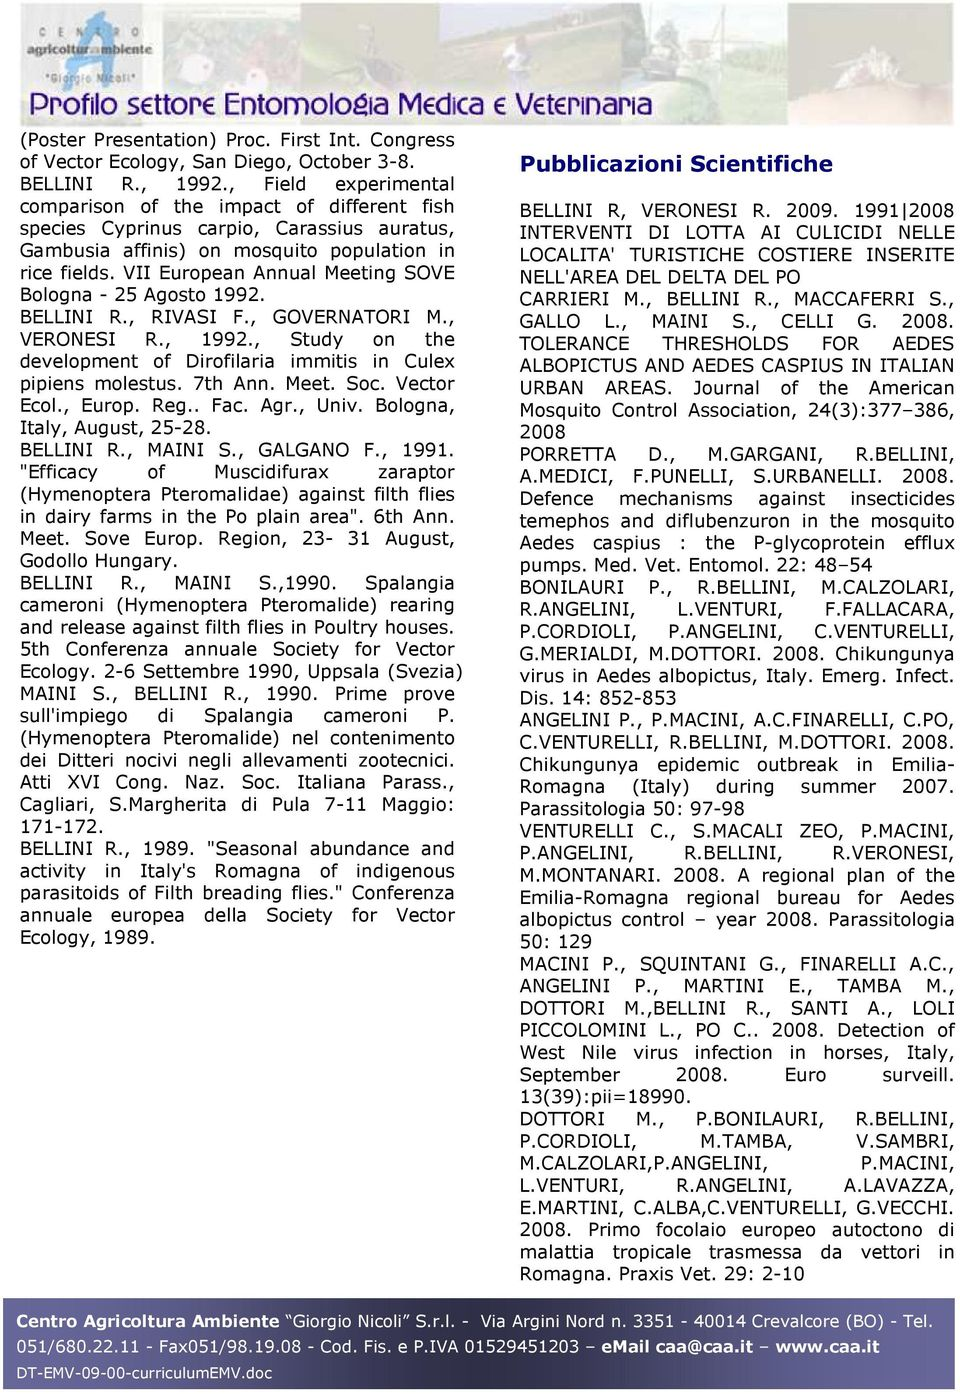 VII European Annual Meeting SOVE Bologna - 25 Agosto 1992. BELLINI R., RIVASI F., GOVERNATORI M., VERONESI R., 1992., Study on the development of Dirofilaria immitis in Culex pipiens molestus.